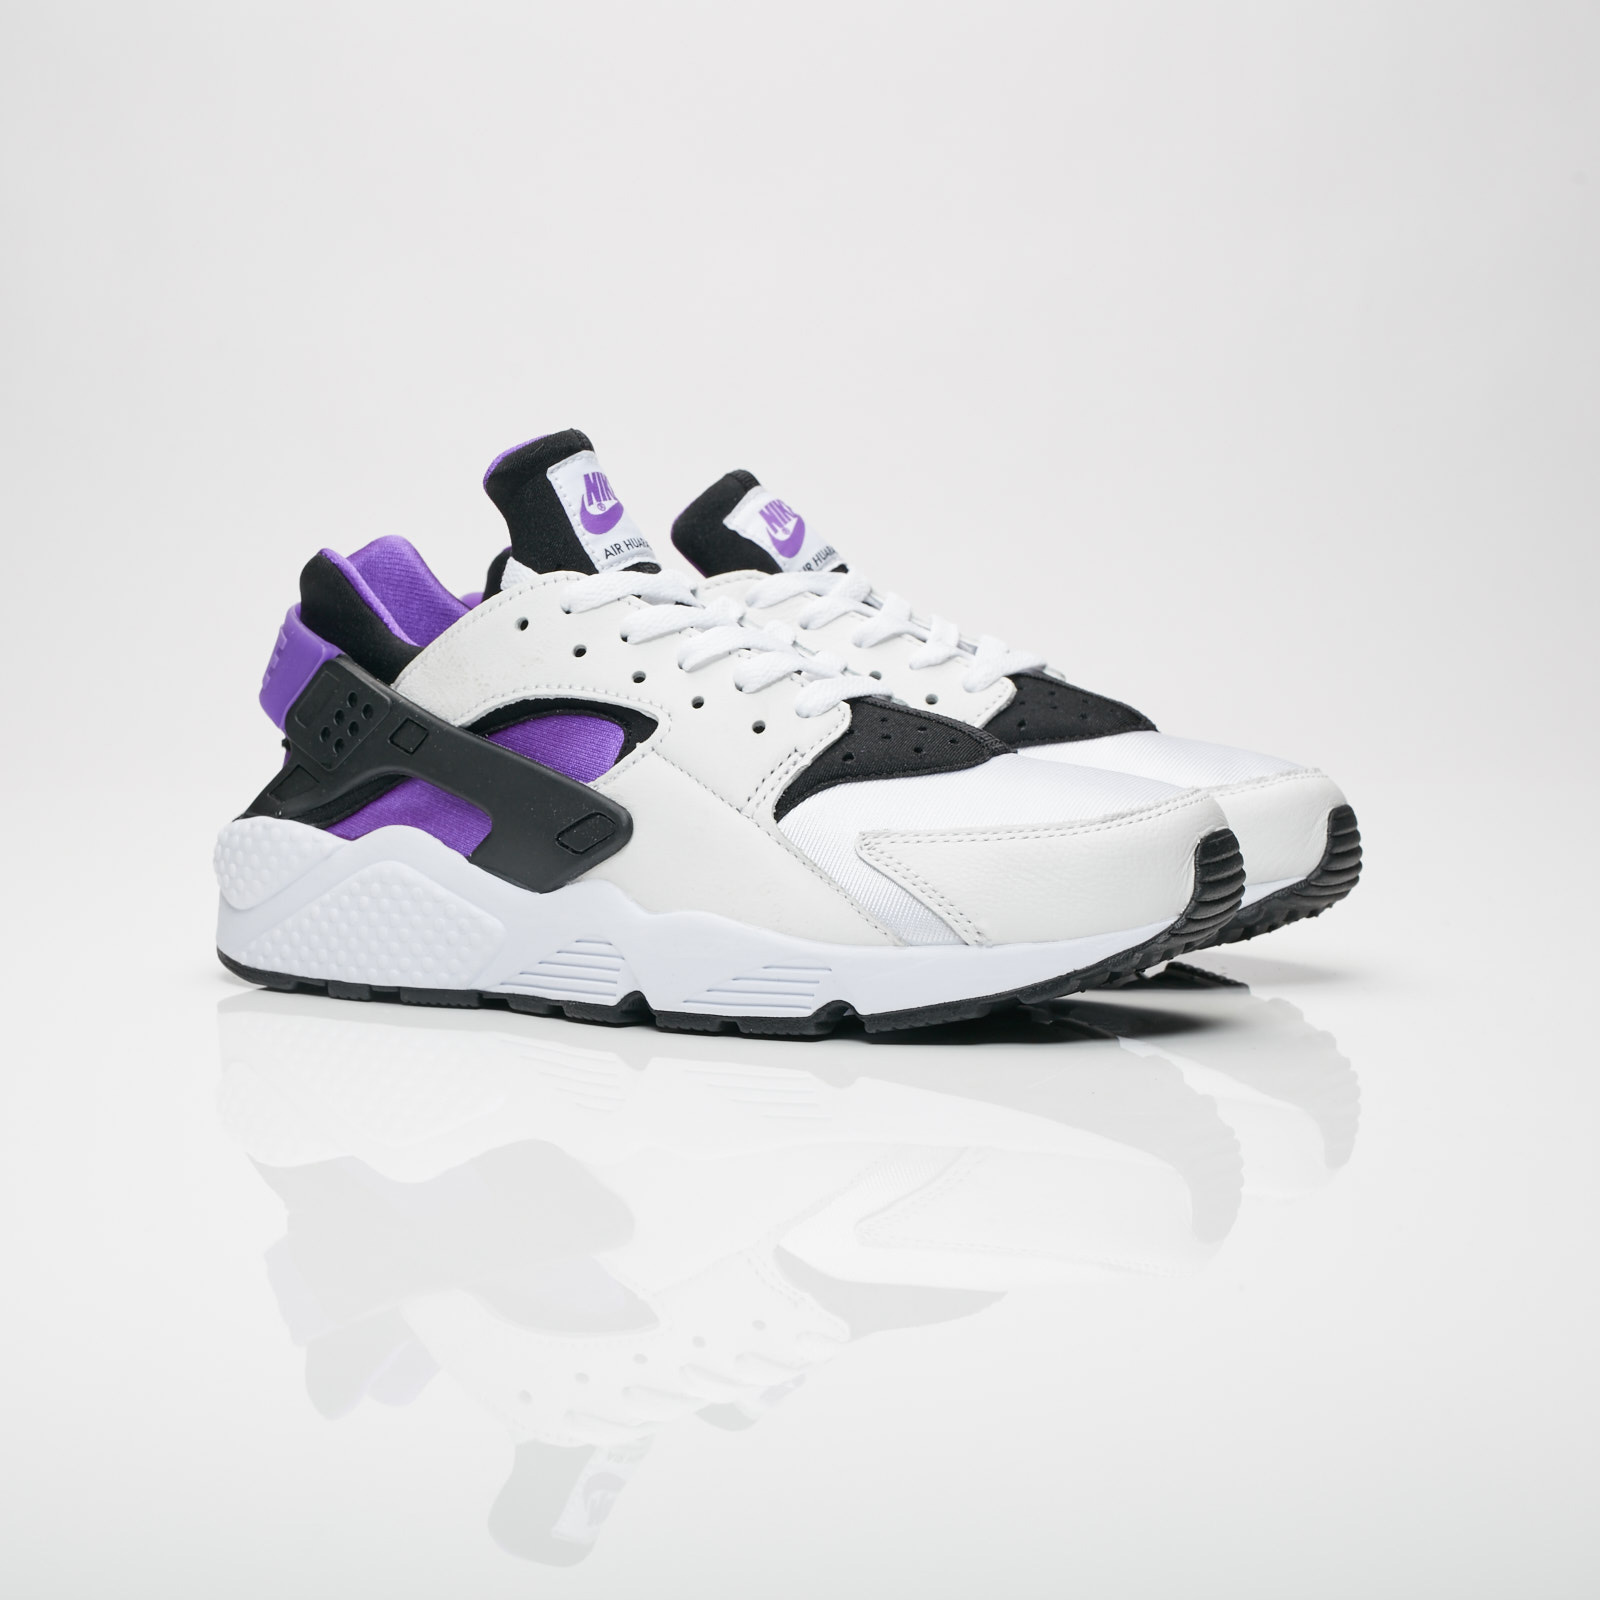 6450c6c6b29eb Nike Air Huarache Run 91 Qs - Ah8049-001 - Sneakersnstuff